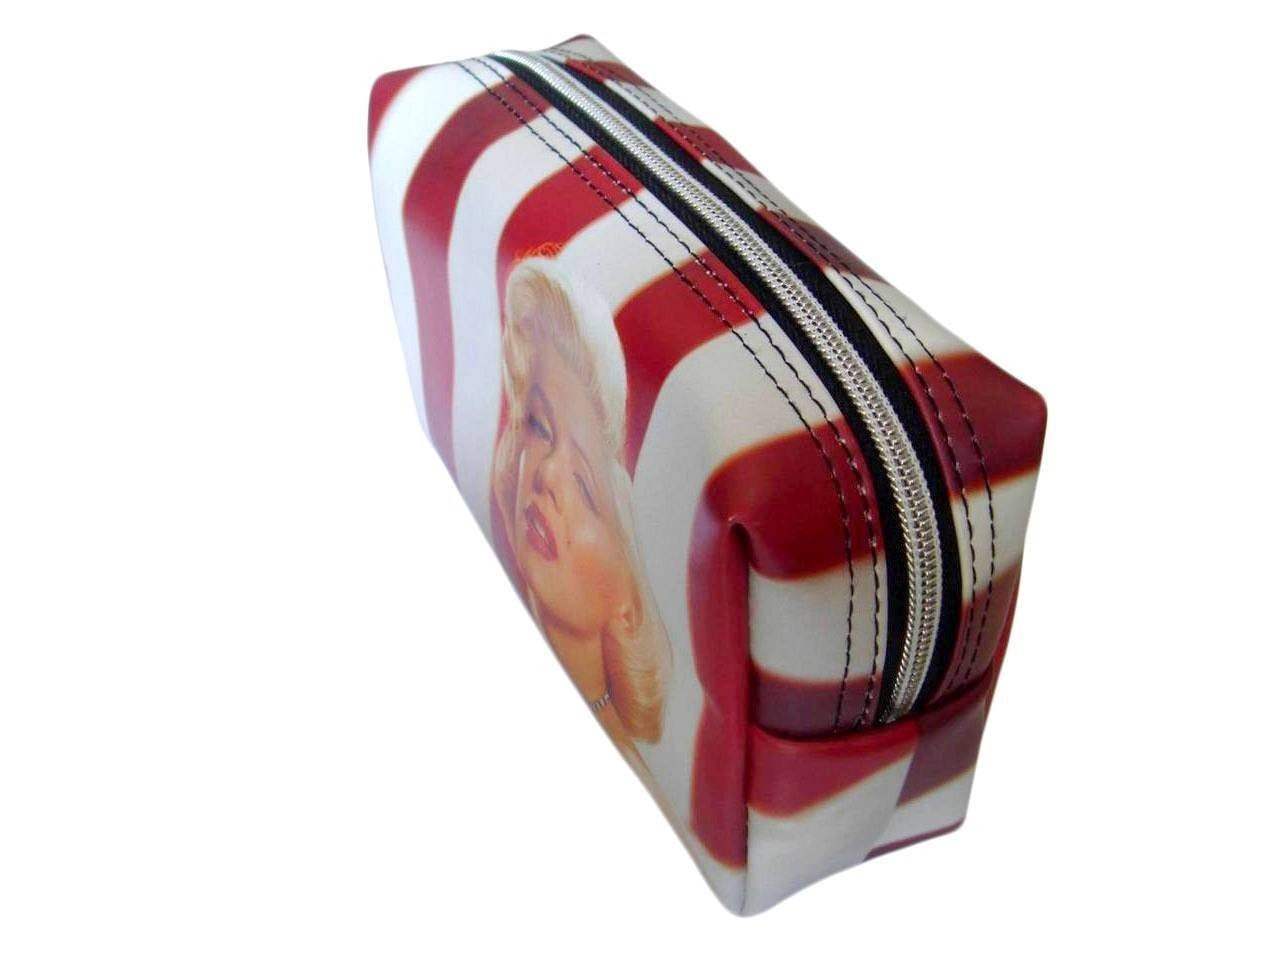 Marilyn Monroe Red Lip Retro Make Up Lipstick Purse